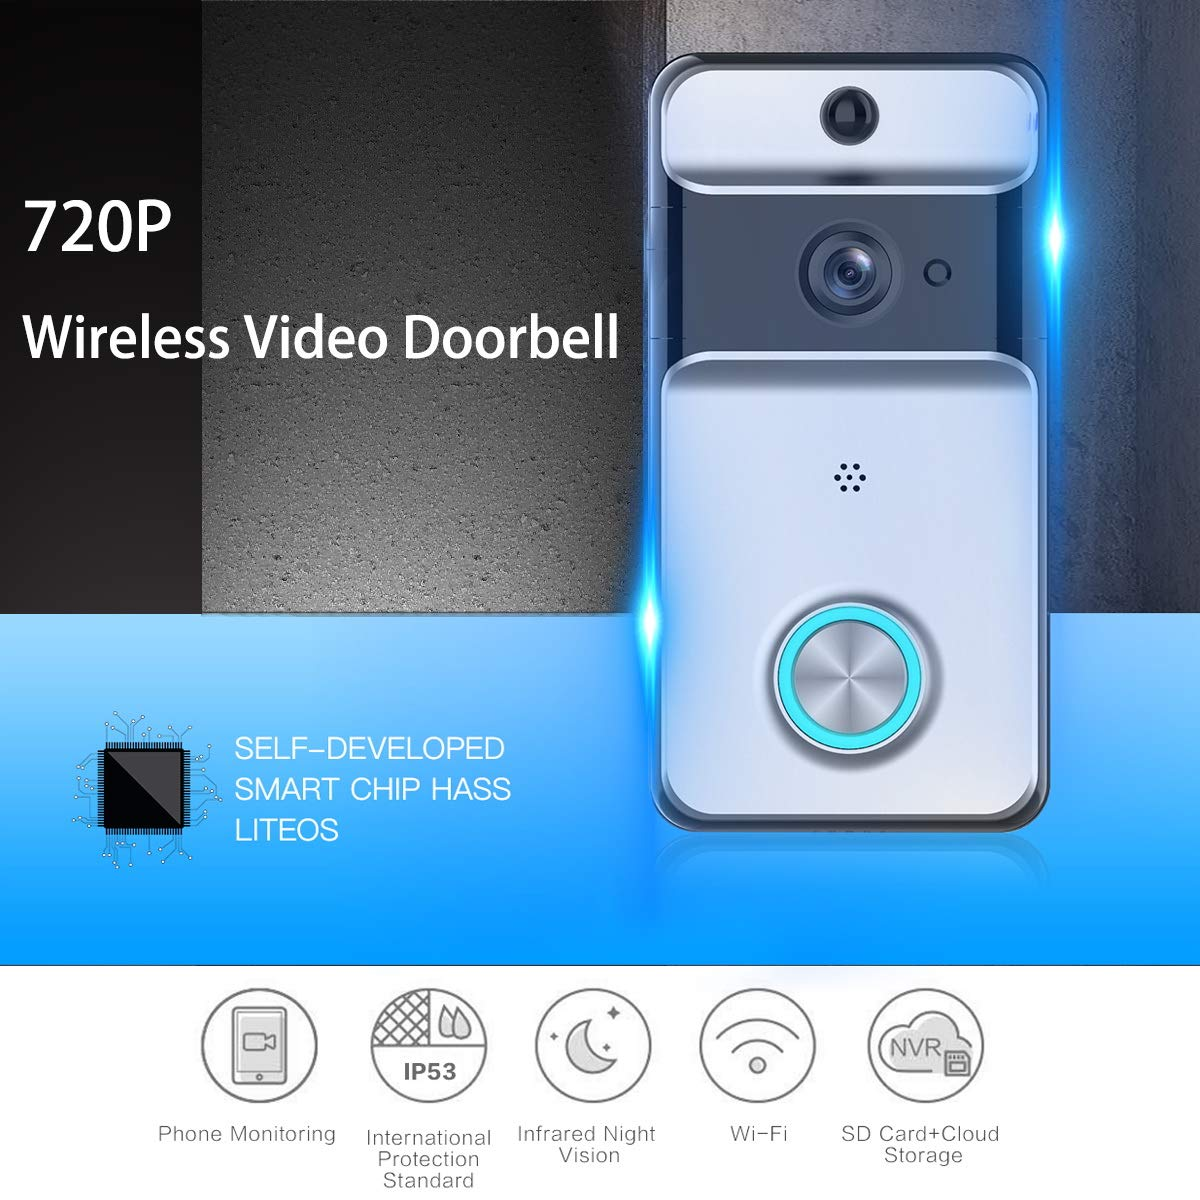 Video Doorbell Camera Wireless WIFI 720P Home Security Camera Monitor Waterproof Work with Alexa,PIR Detection,Night Vison,2 Way Audio,Free Cloud Storage Smart Doorbell iOS Android